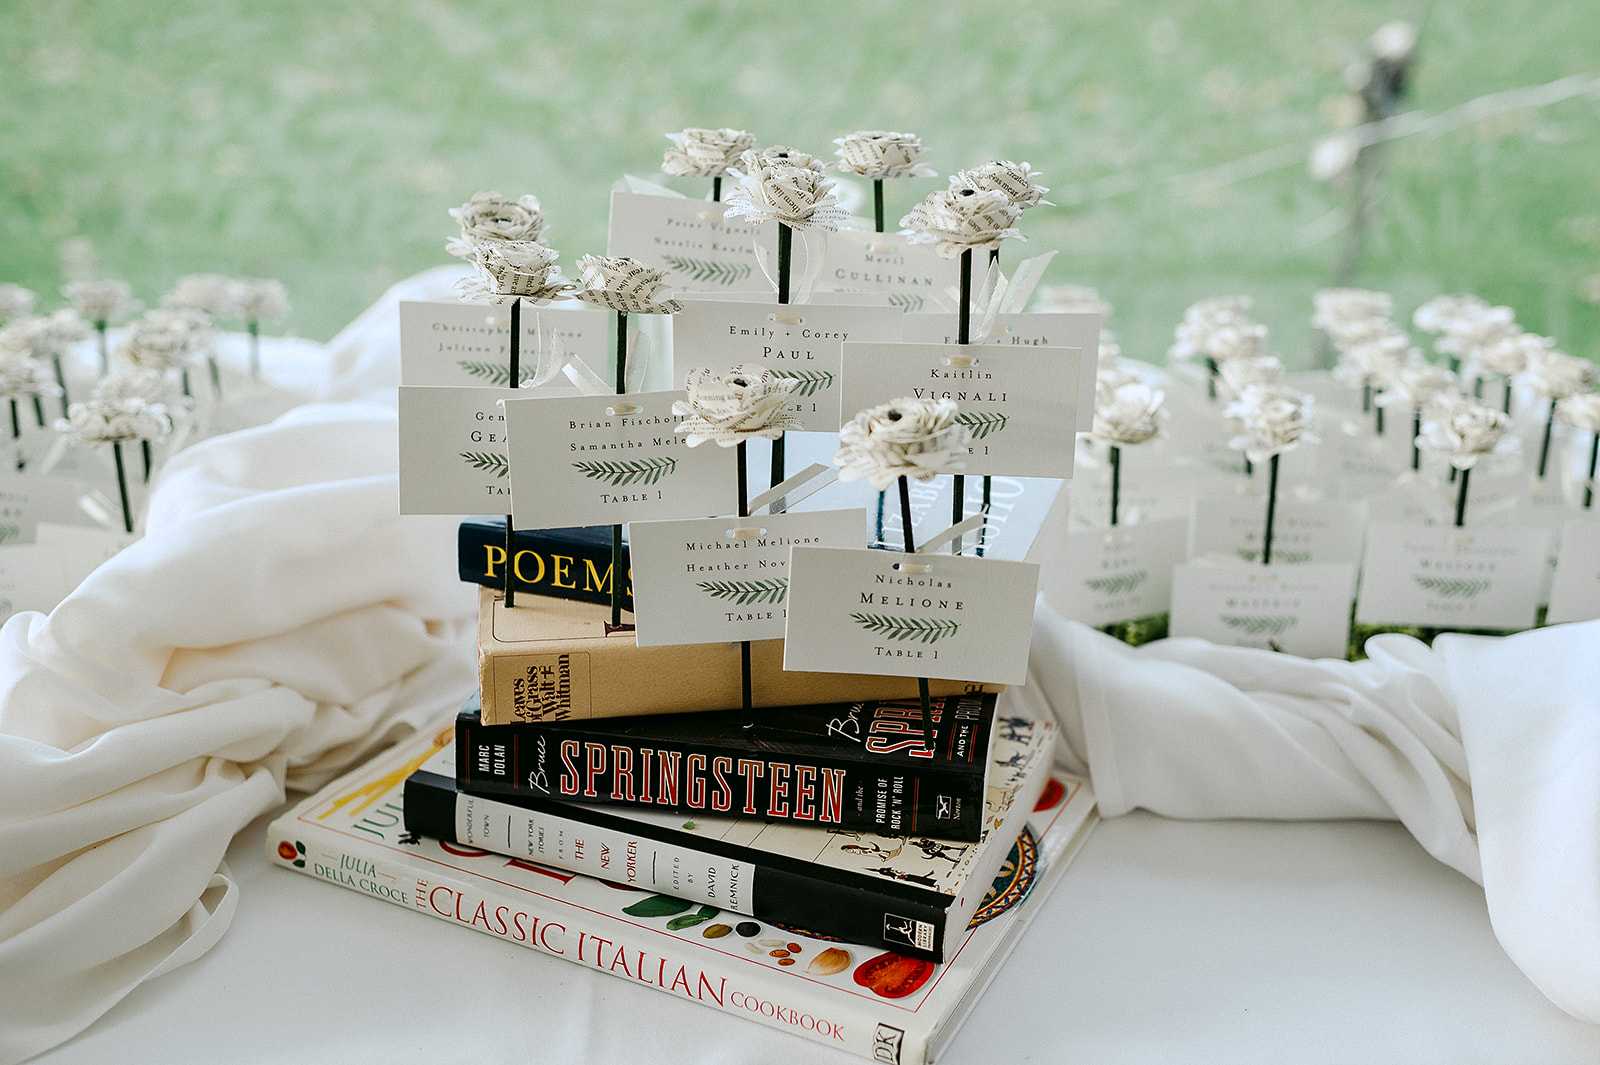 Kaitlin and Nichola's' wedding details were perfect, including these place cards made of pages from Kaitlin's favorite books